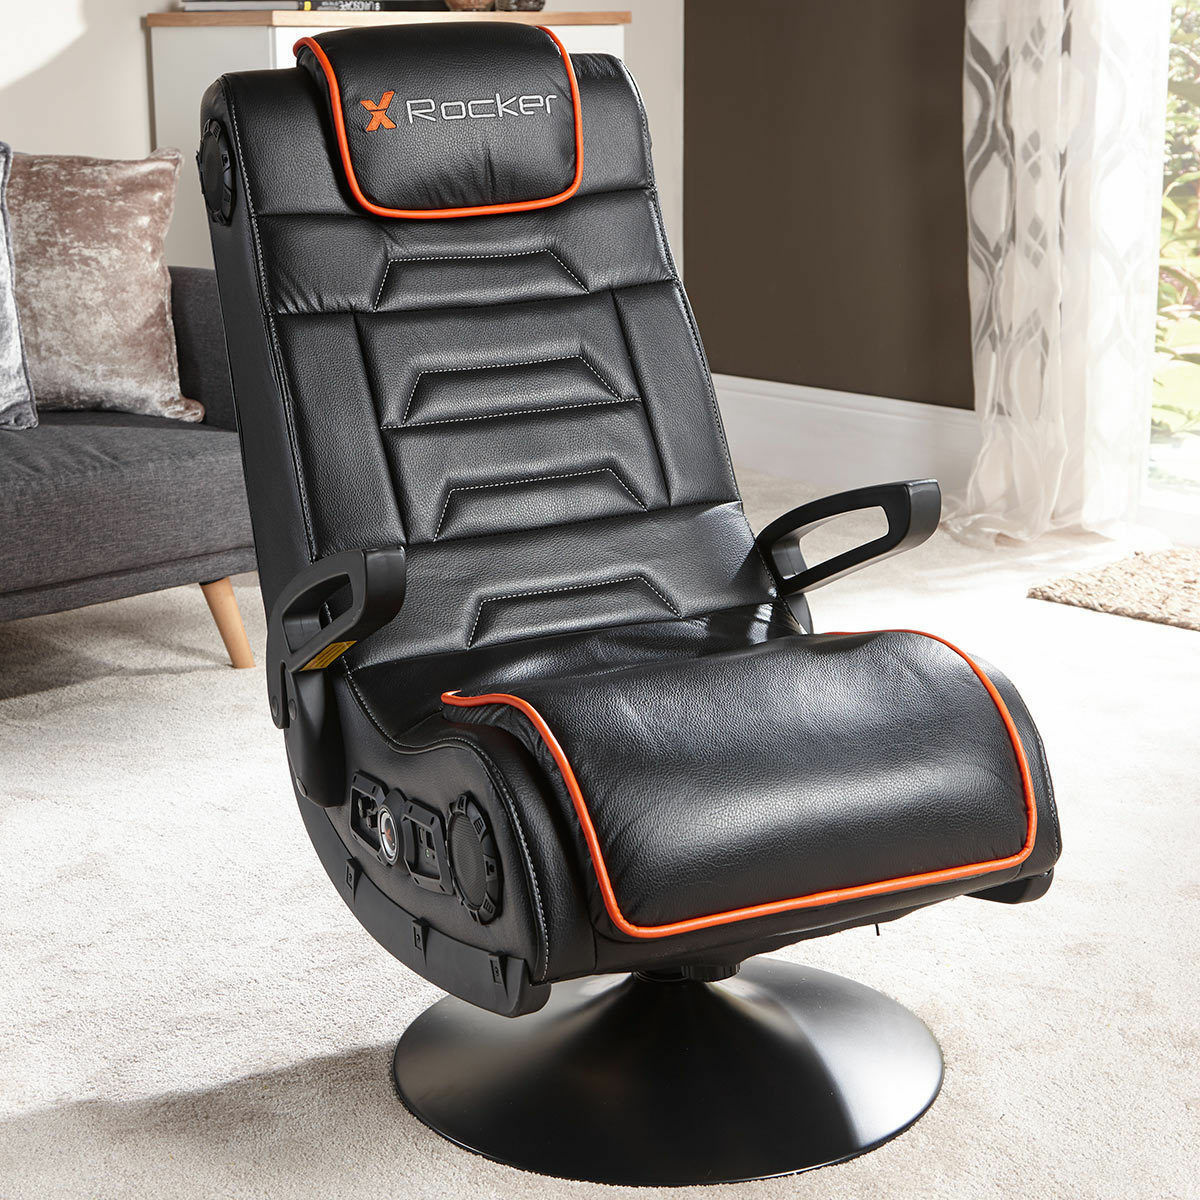 Terrific Details About X Rocker Afterburner Pedestal Gaming Chair Bluetooth Audio Sound Ps4 Xbox One Pdpeps Interior Chair Design Pdpepsorg